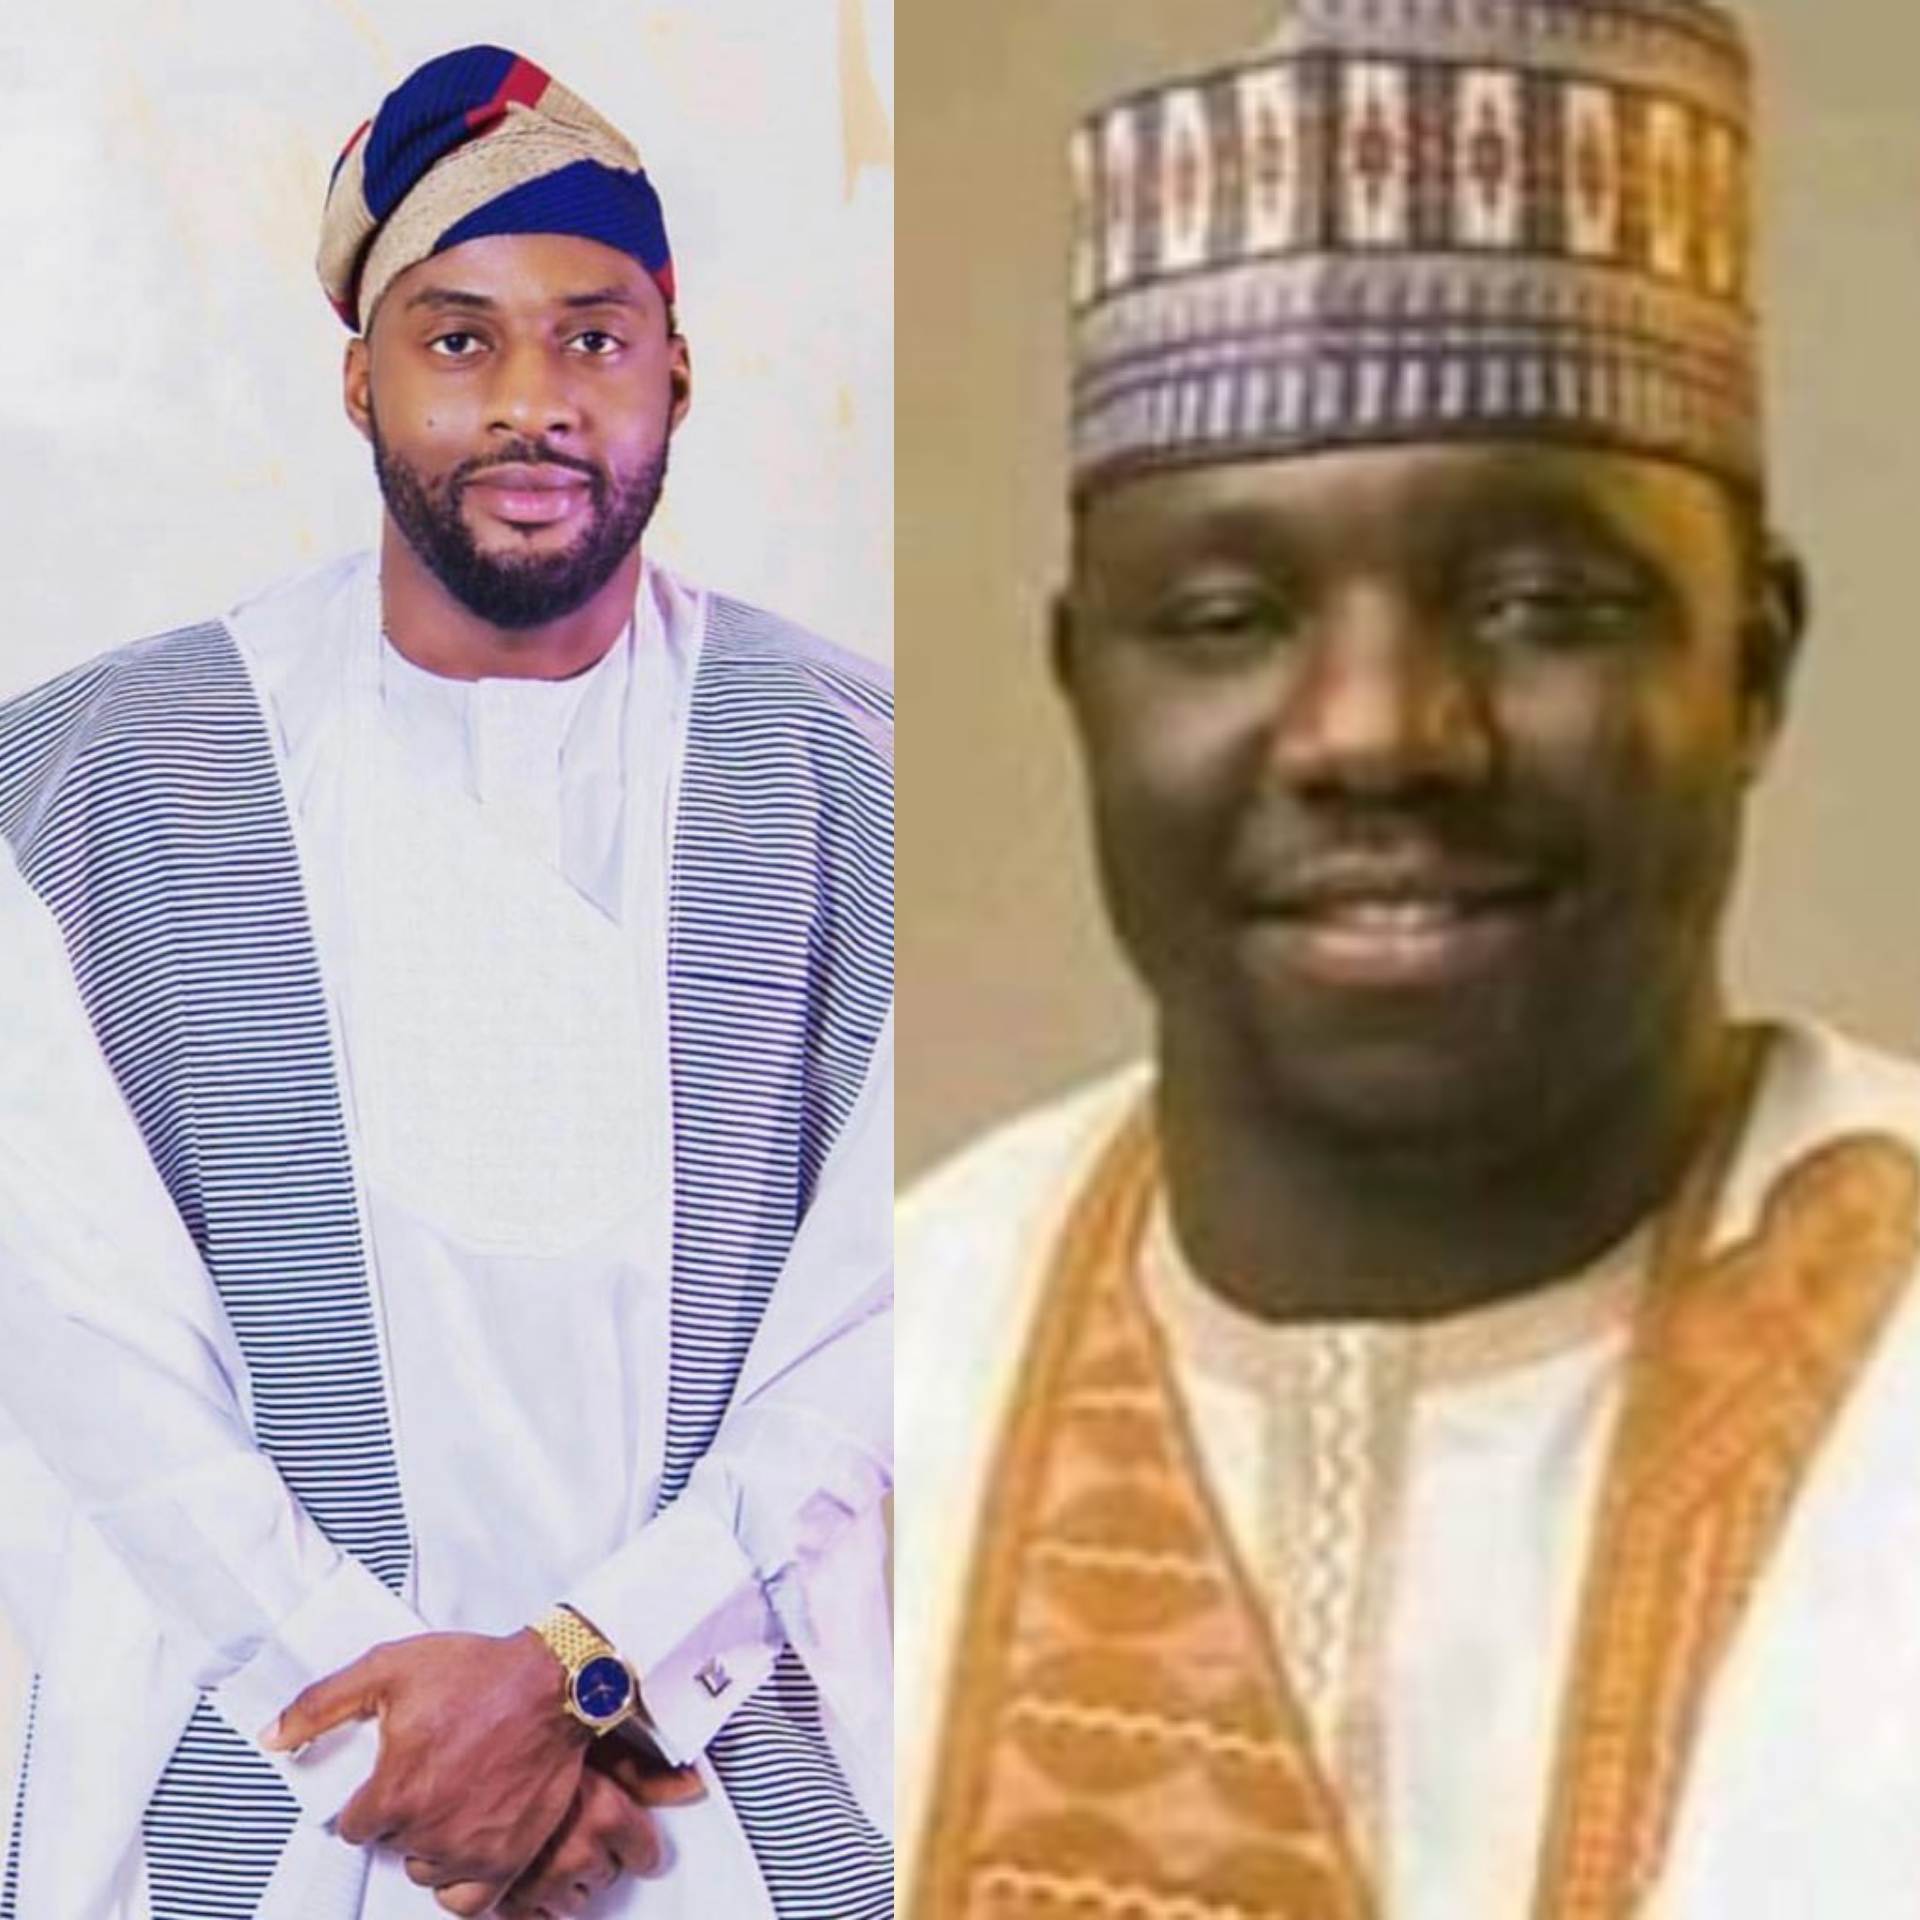 The New Speakers of Oyo & Plateau Parliaments are 32 & 33 Years Old Respectively!